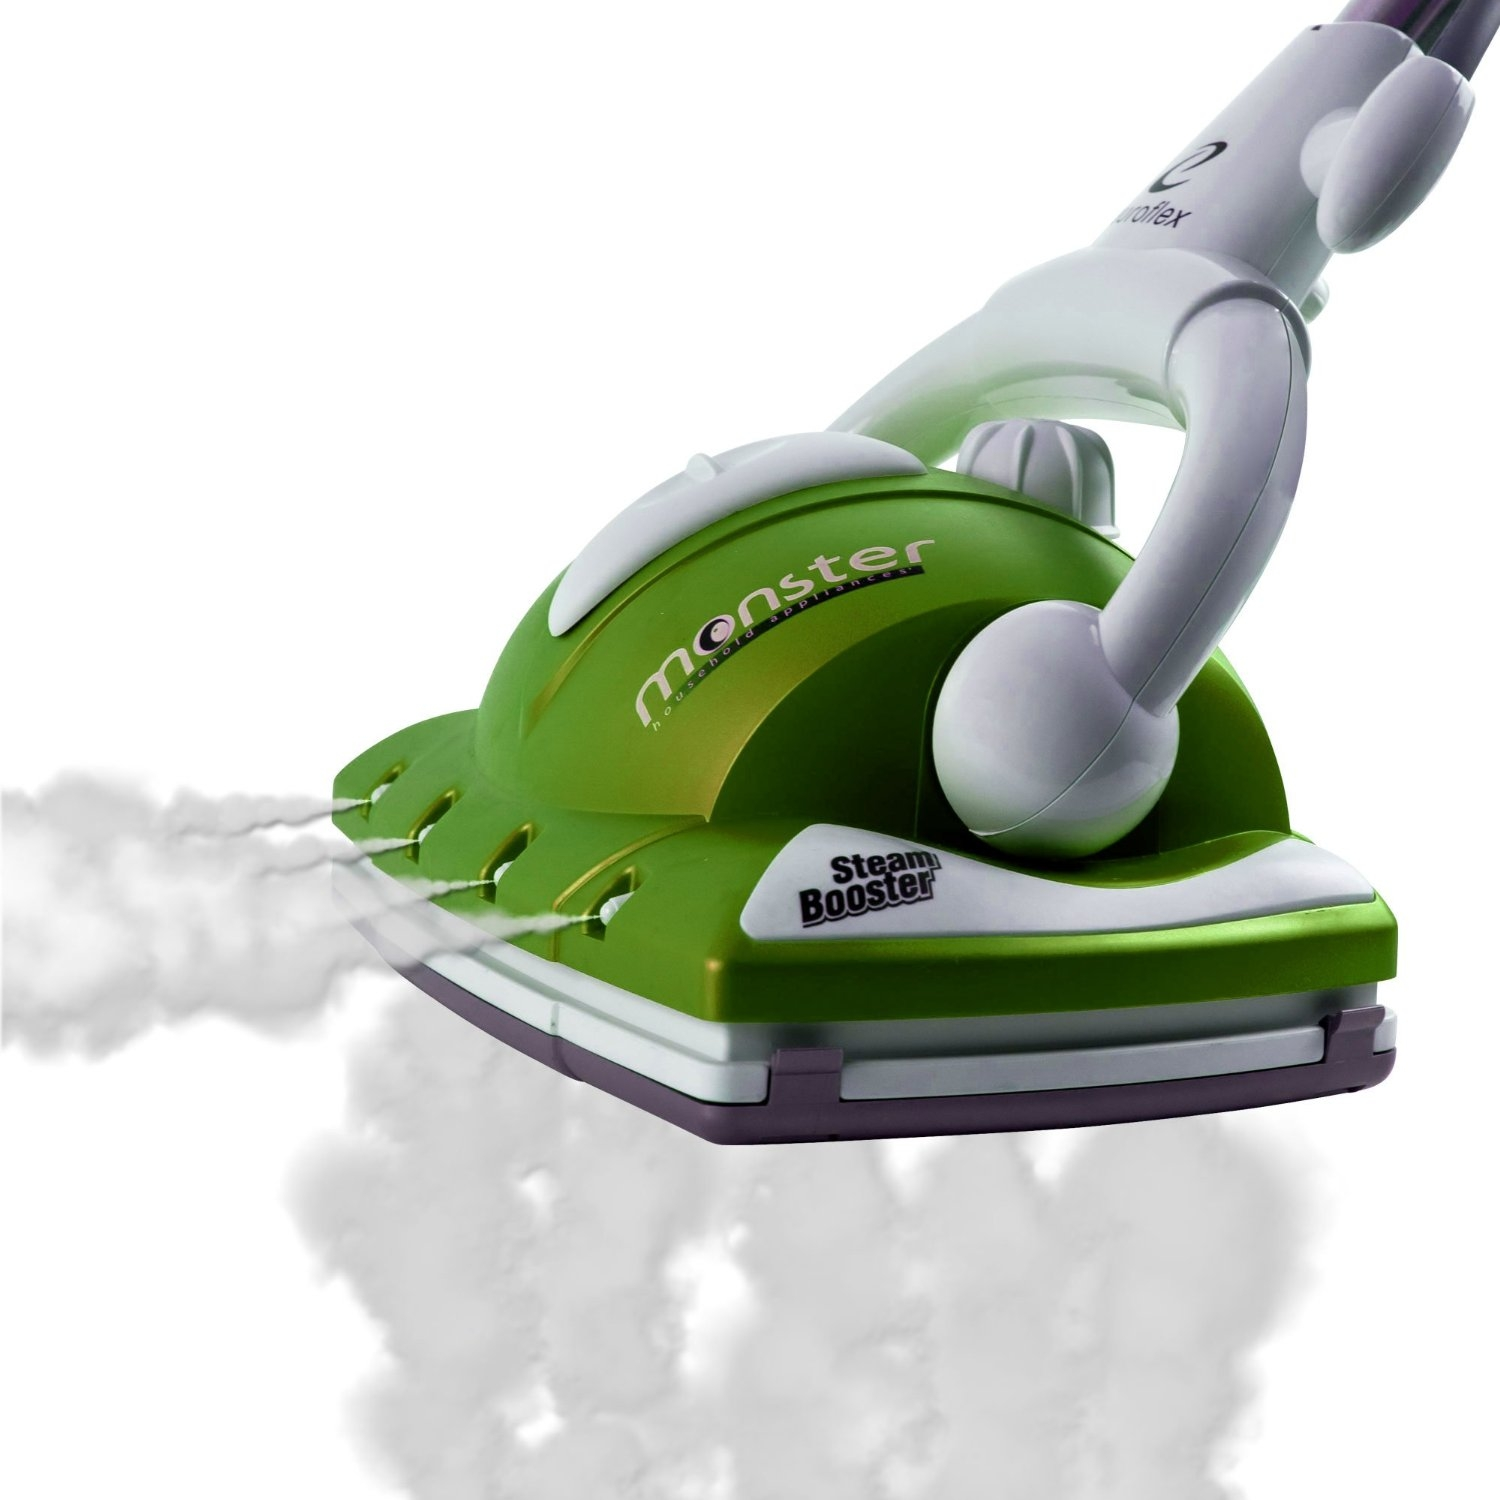 Best Steam Mop For Wood Floors 2015